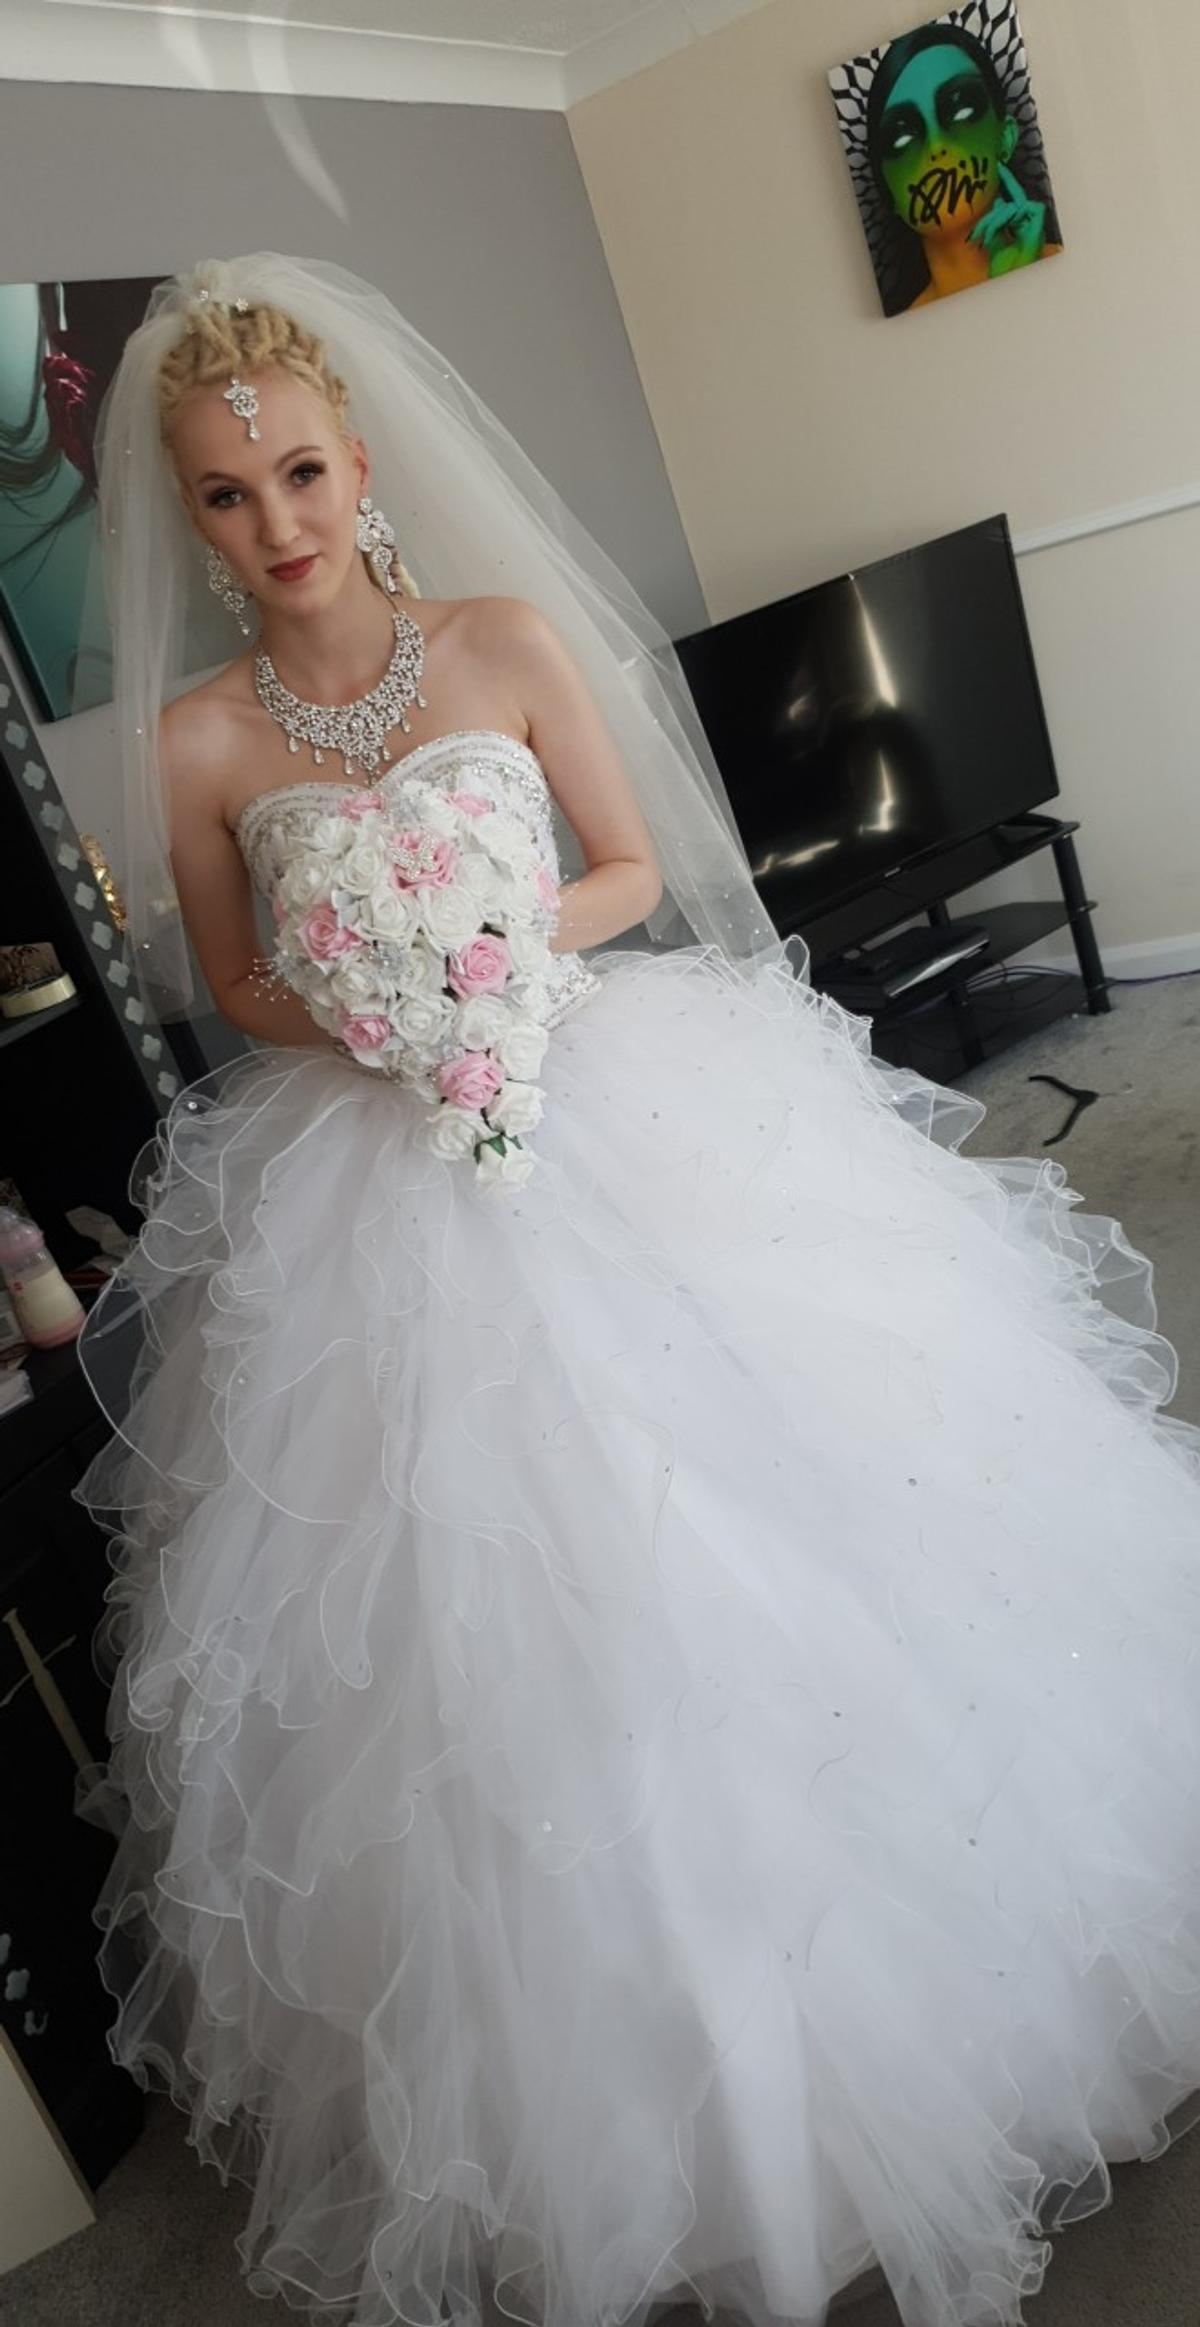 wedding dress and under skirt. size 6-8 but does have a corset back so may go bigger. jewels on the bodice. will need picking up.